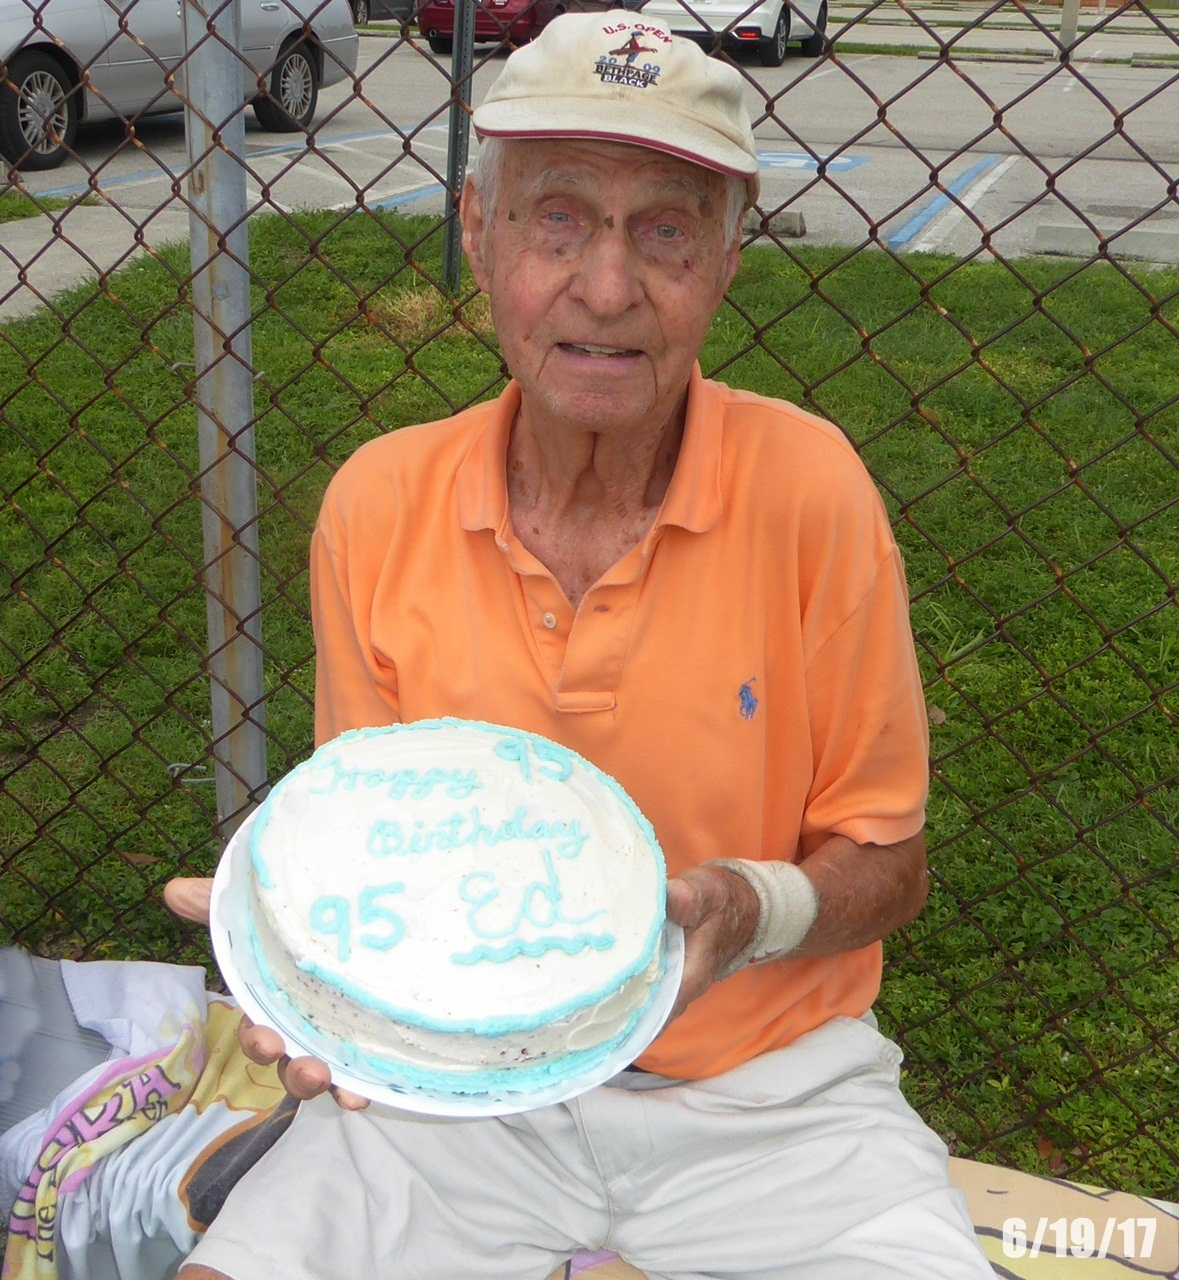 """Ed loved tennis. This is he at Rutenberg tennis courts in Fort Myers, FL.  He played there for years with a tennis group that plays Monday, Wednesday, and Friday mornings. He hardly ever missed. I remember him saying, """"I hope we can play tennis up in Heaven."""" This is his last birthday celebrated at Rutenberg (his 95th). He gave tennis up sometime after that and not because he wanted to.....because he was afraid of falling. HOPE YOU ARE PLAYING TENNIS UP THERE ED!"""